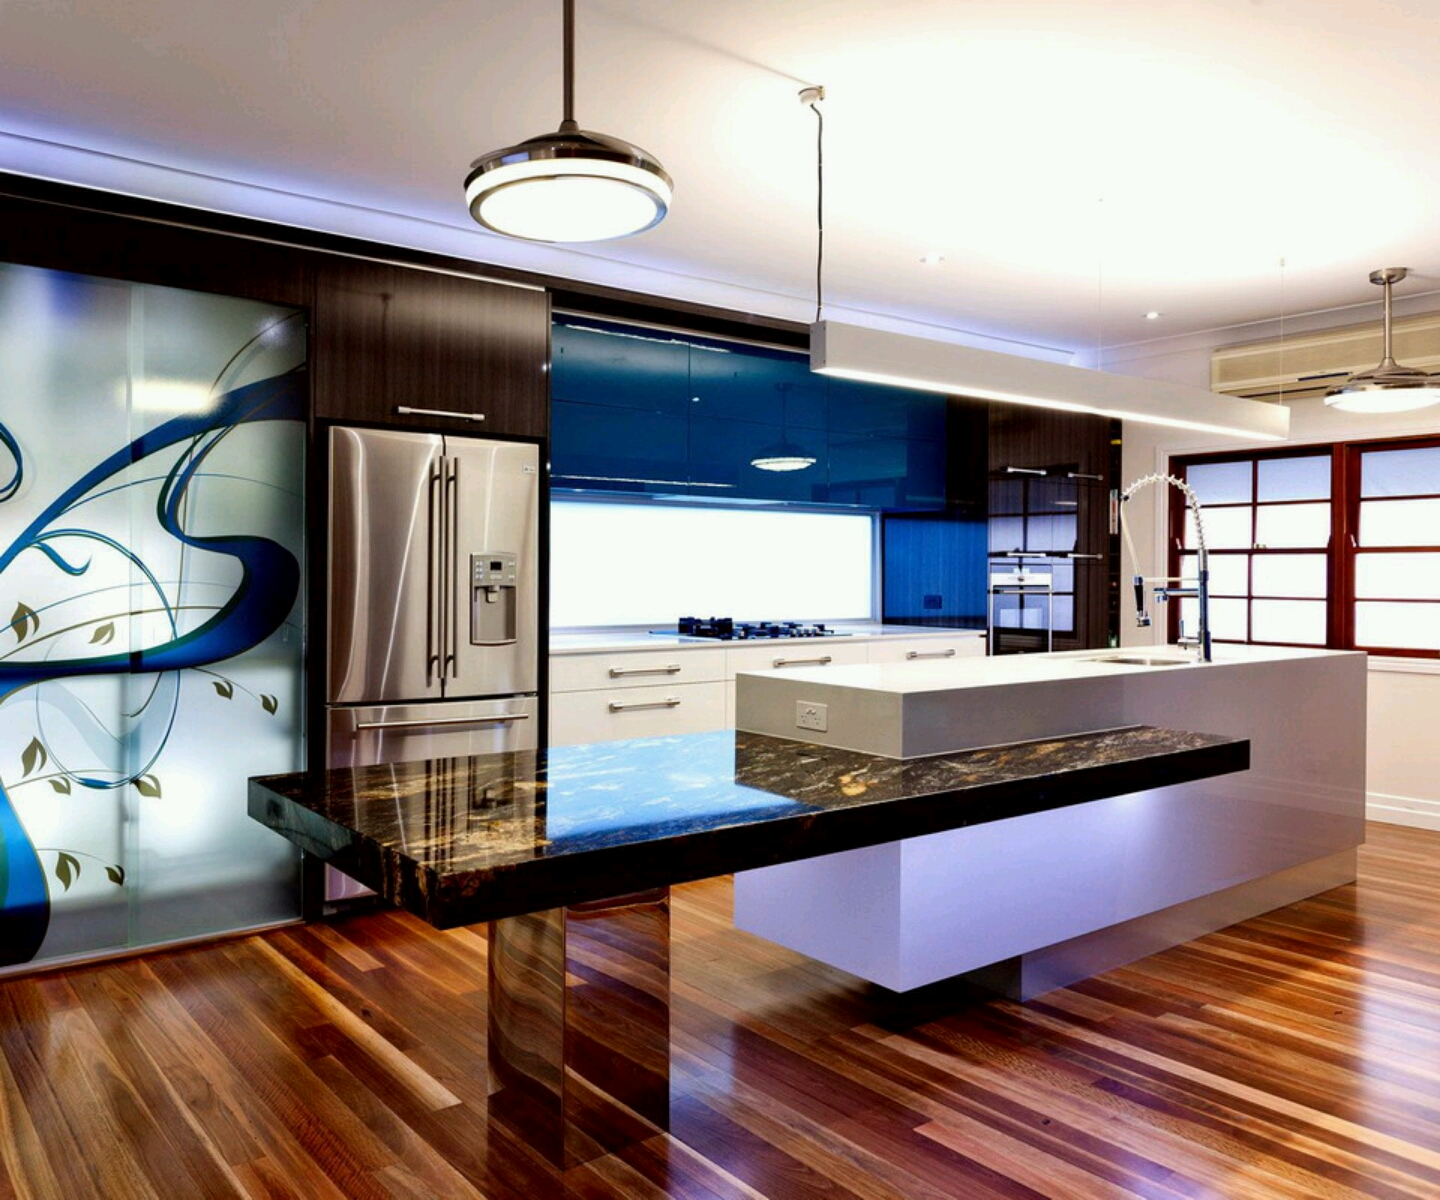 contemporary kitchen design ideas modern kitchen designs 2013 interior decorating accessories 314